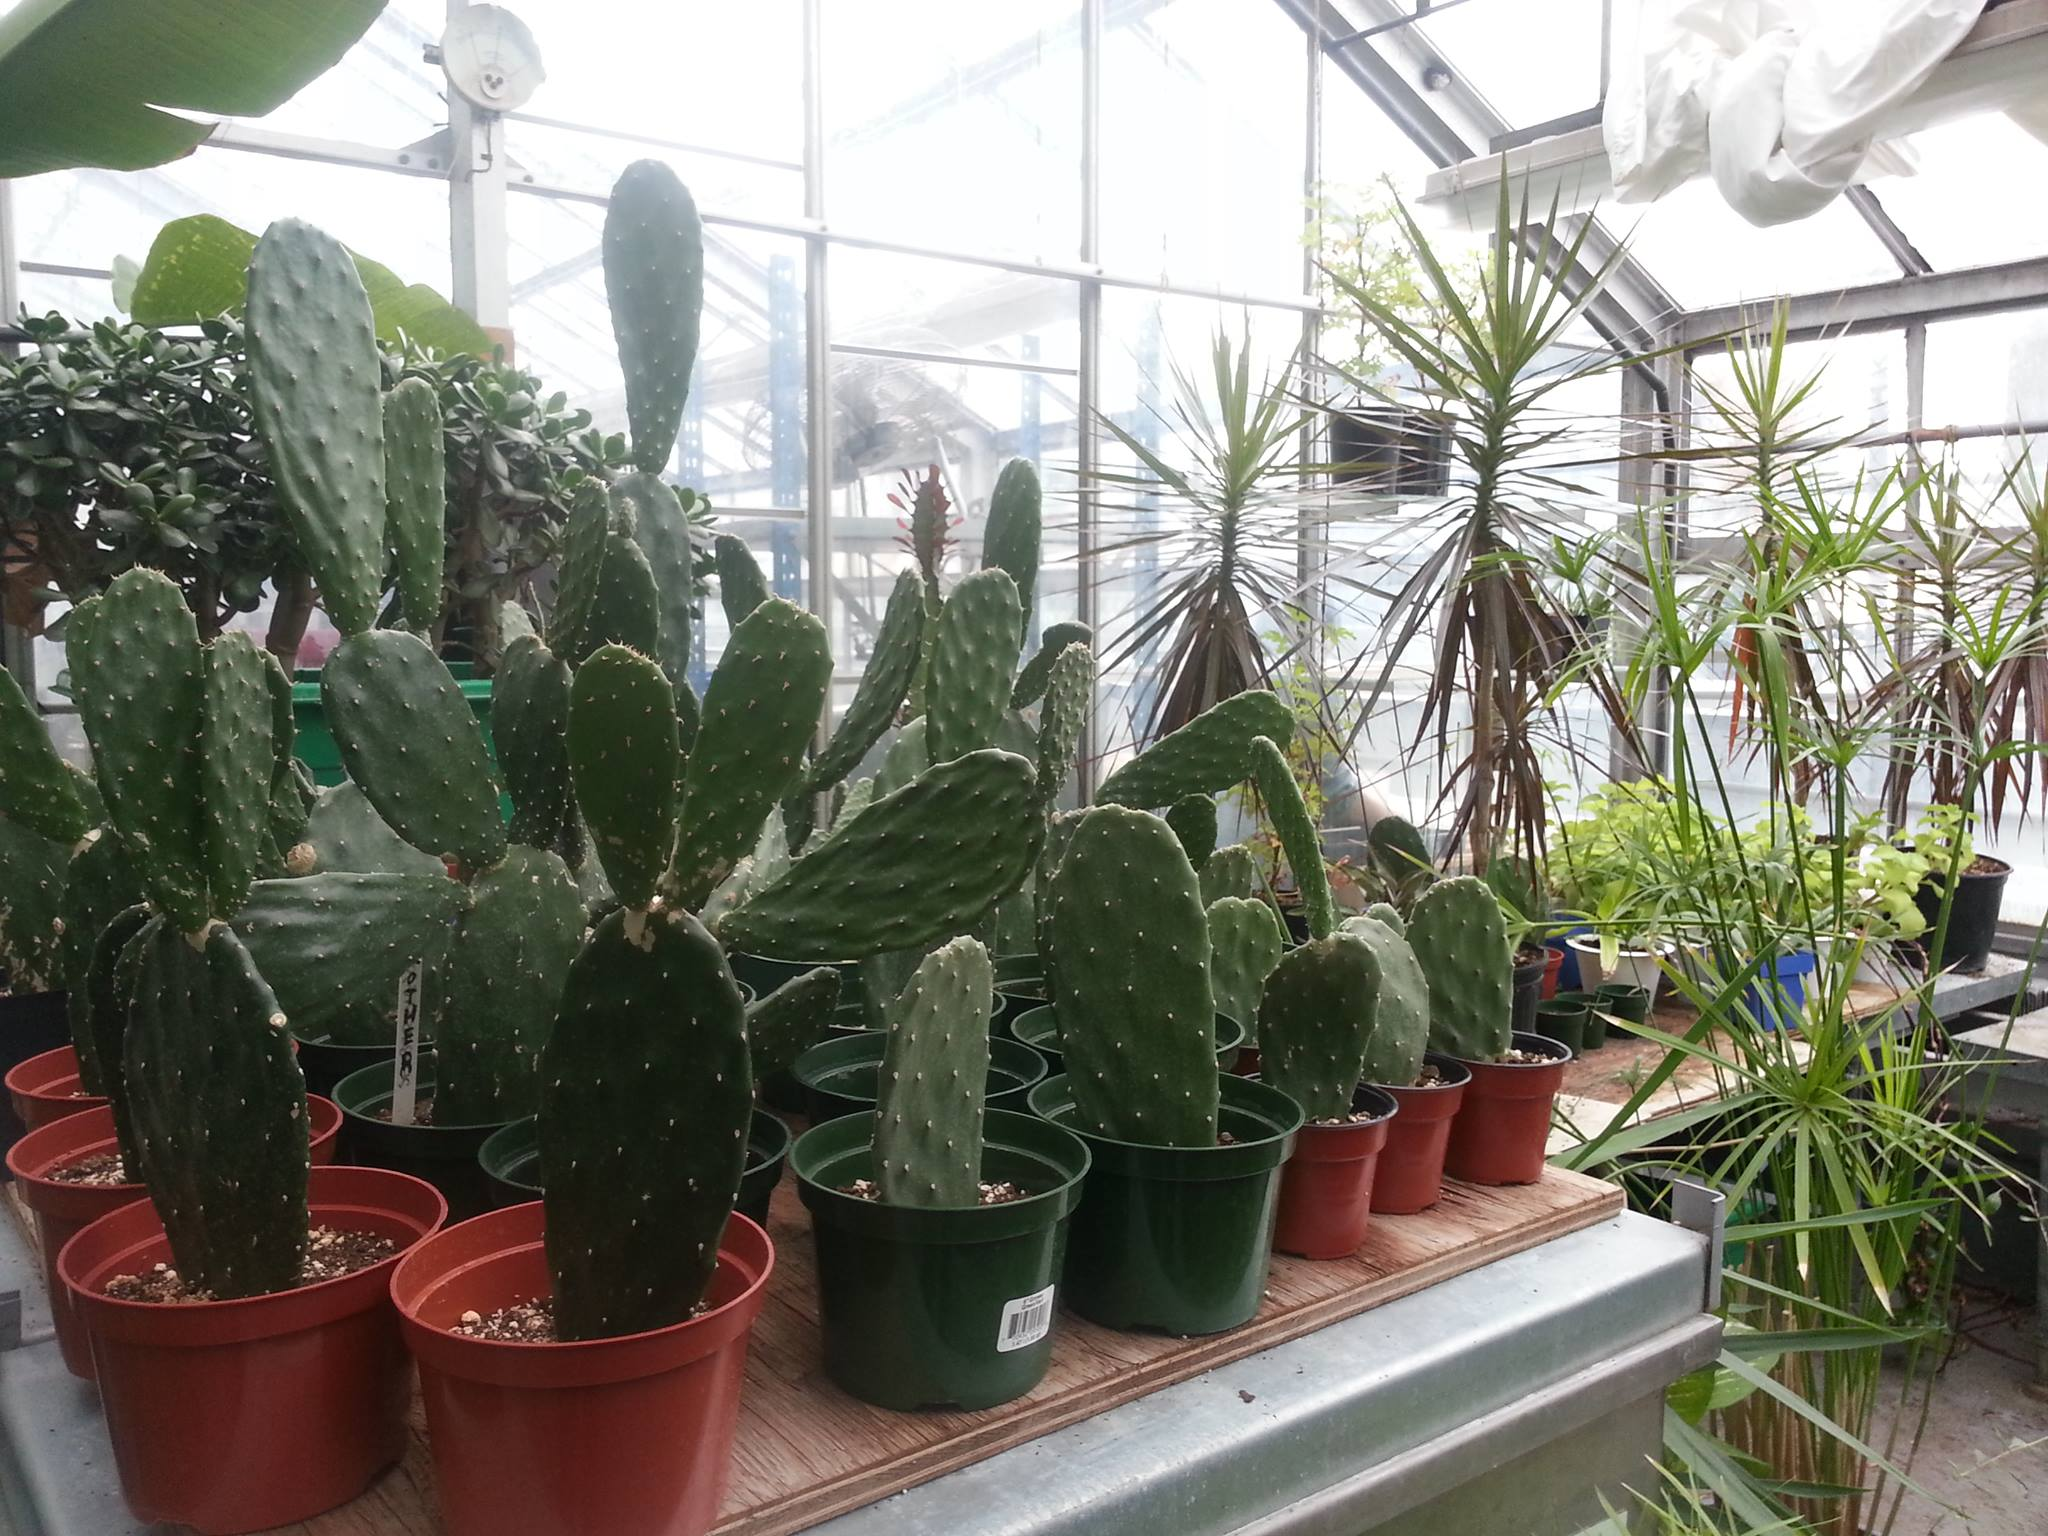 House plant sale 2016 | The Concordia Greenhouse on floral greenhouse, botany greenhouse, snow greenhouse, outdoor greenhouse, bonsai greenhouse, gardening greenhouse, white greenhouse, horticulture greenhouse, conservatory greenhouse, tree greenhouse, green greenhouse, indoor greenhouse, vegetable greenhouse, plants greenhouse, spring greenhouse, weed greenhouse, tropical greenhouse, container greenhouse, nursery greenhouse, home greenhouse,